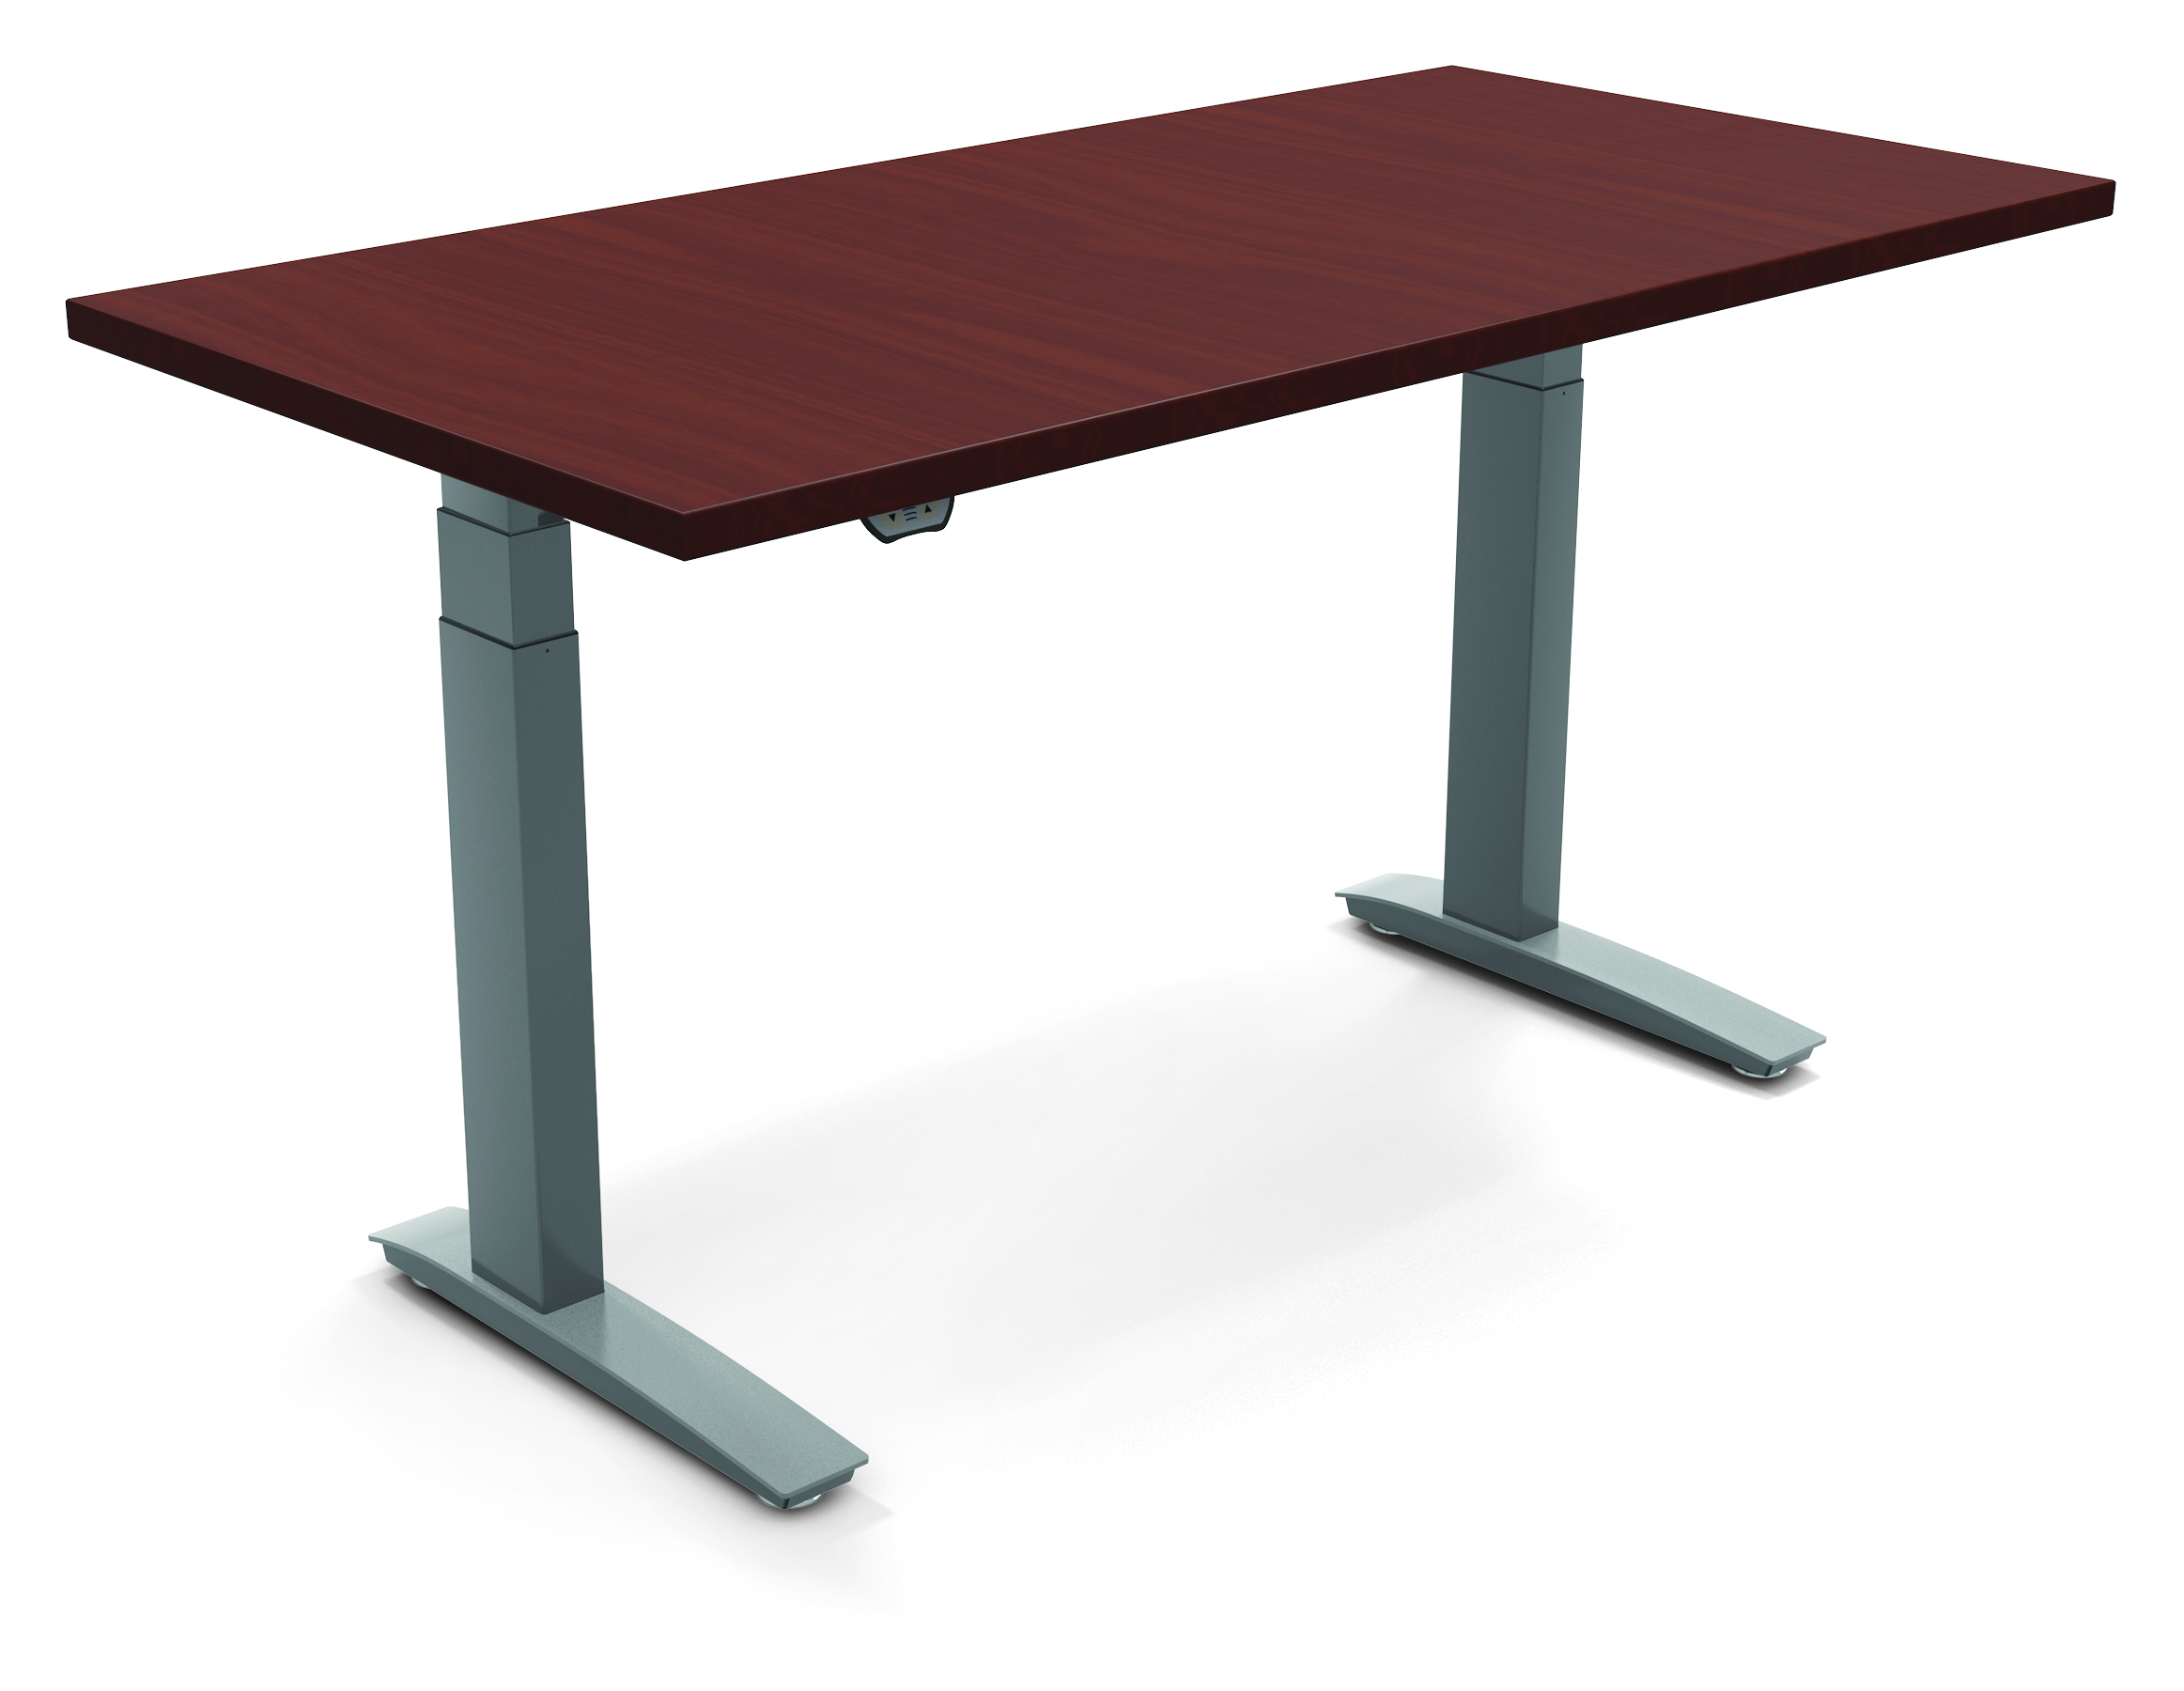 minimalist standing desk Ika minimalist standing desk from Ikea minimalist standing desk office minimalist wood standing desk Ikea minimalist wood standing desk office wood-platform standing desk simple wood-platform standing desk minimalist stan